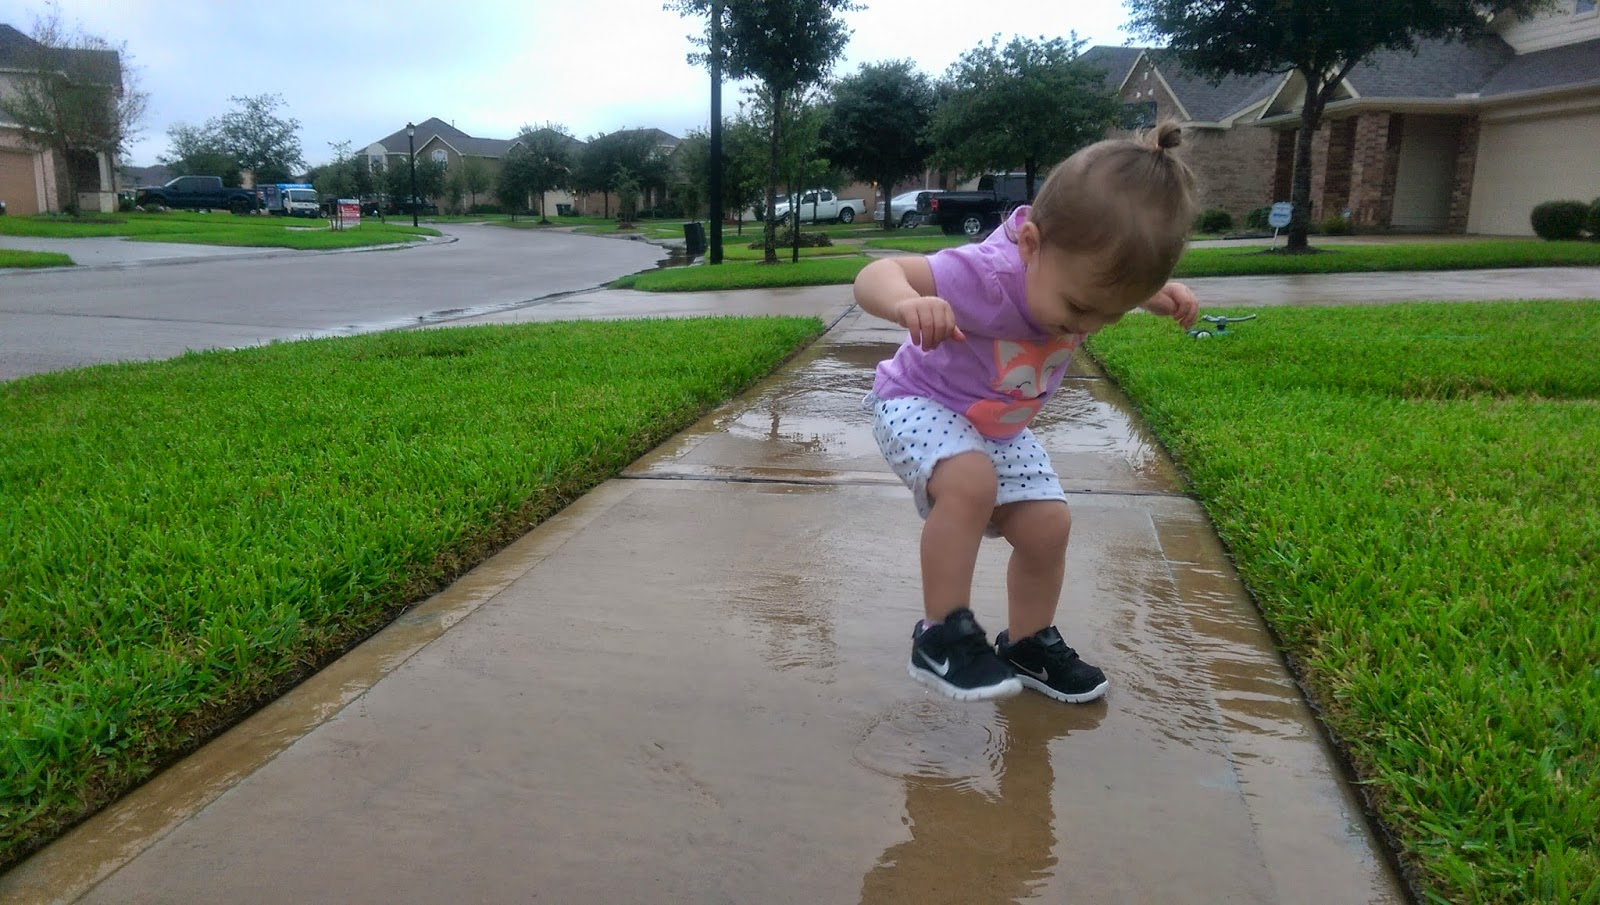 Toddler playing in rain | Bubbles and Gold (www.bubblesandgold.com)